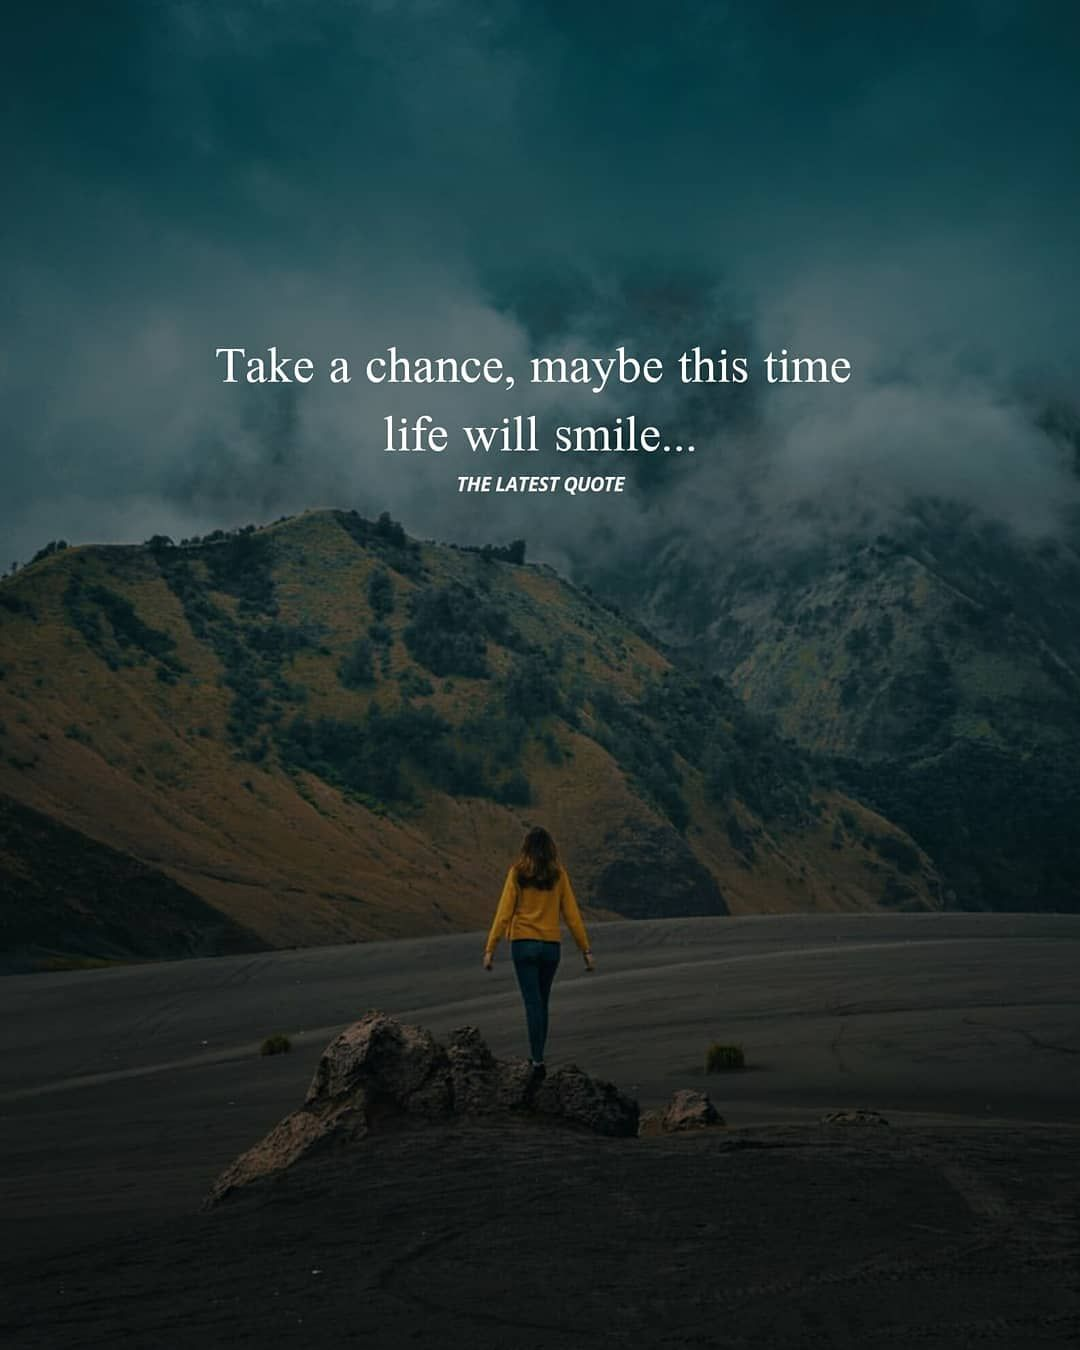 Take A Chance Maybe This Time Life Will Smile Thelatestquote Chance Quotes Positive Quotes Lifetime Quotes